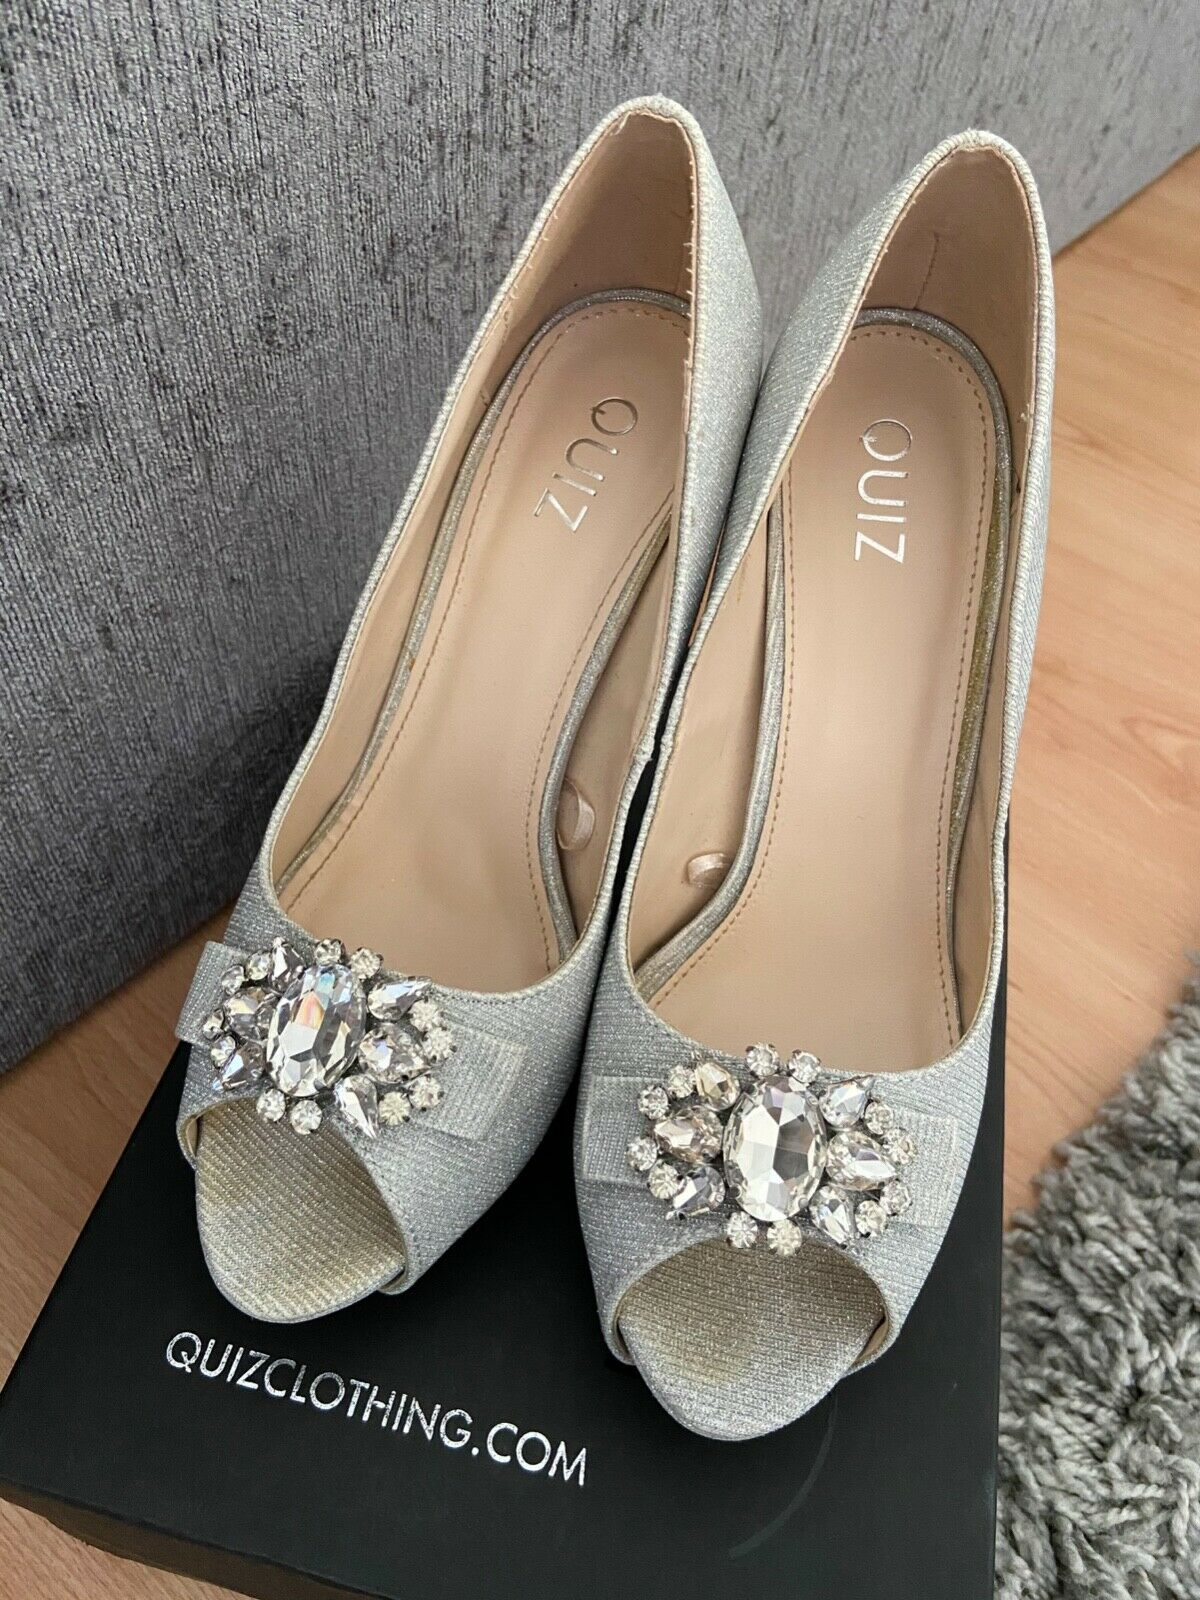 Quiz silver heels size 5 with box